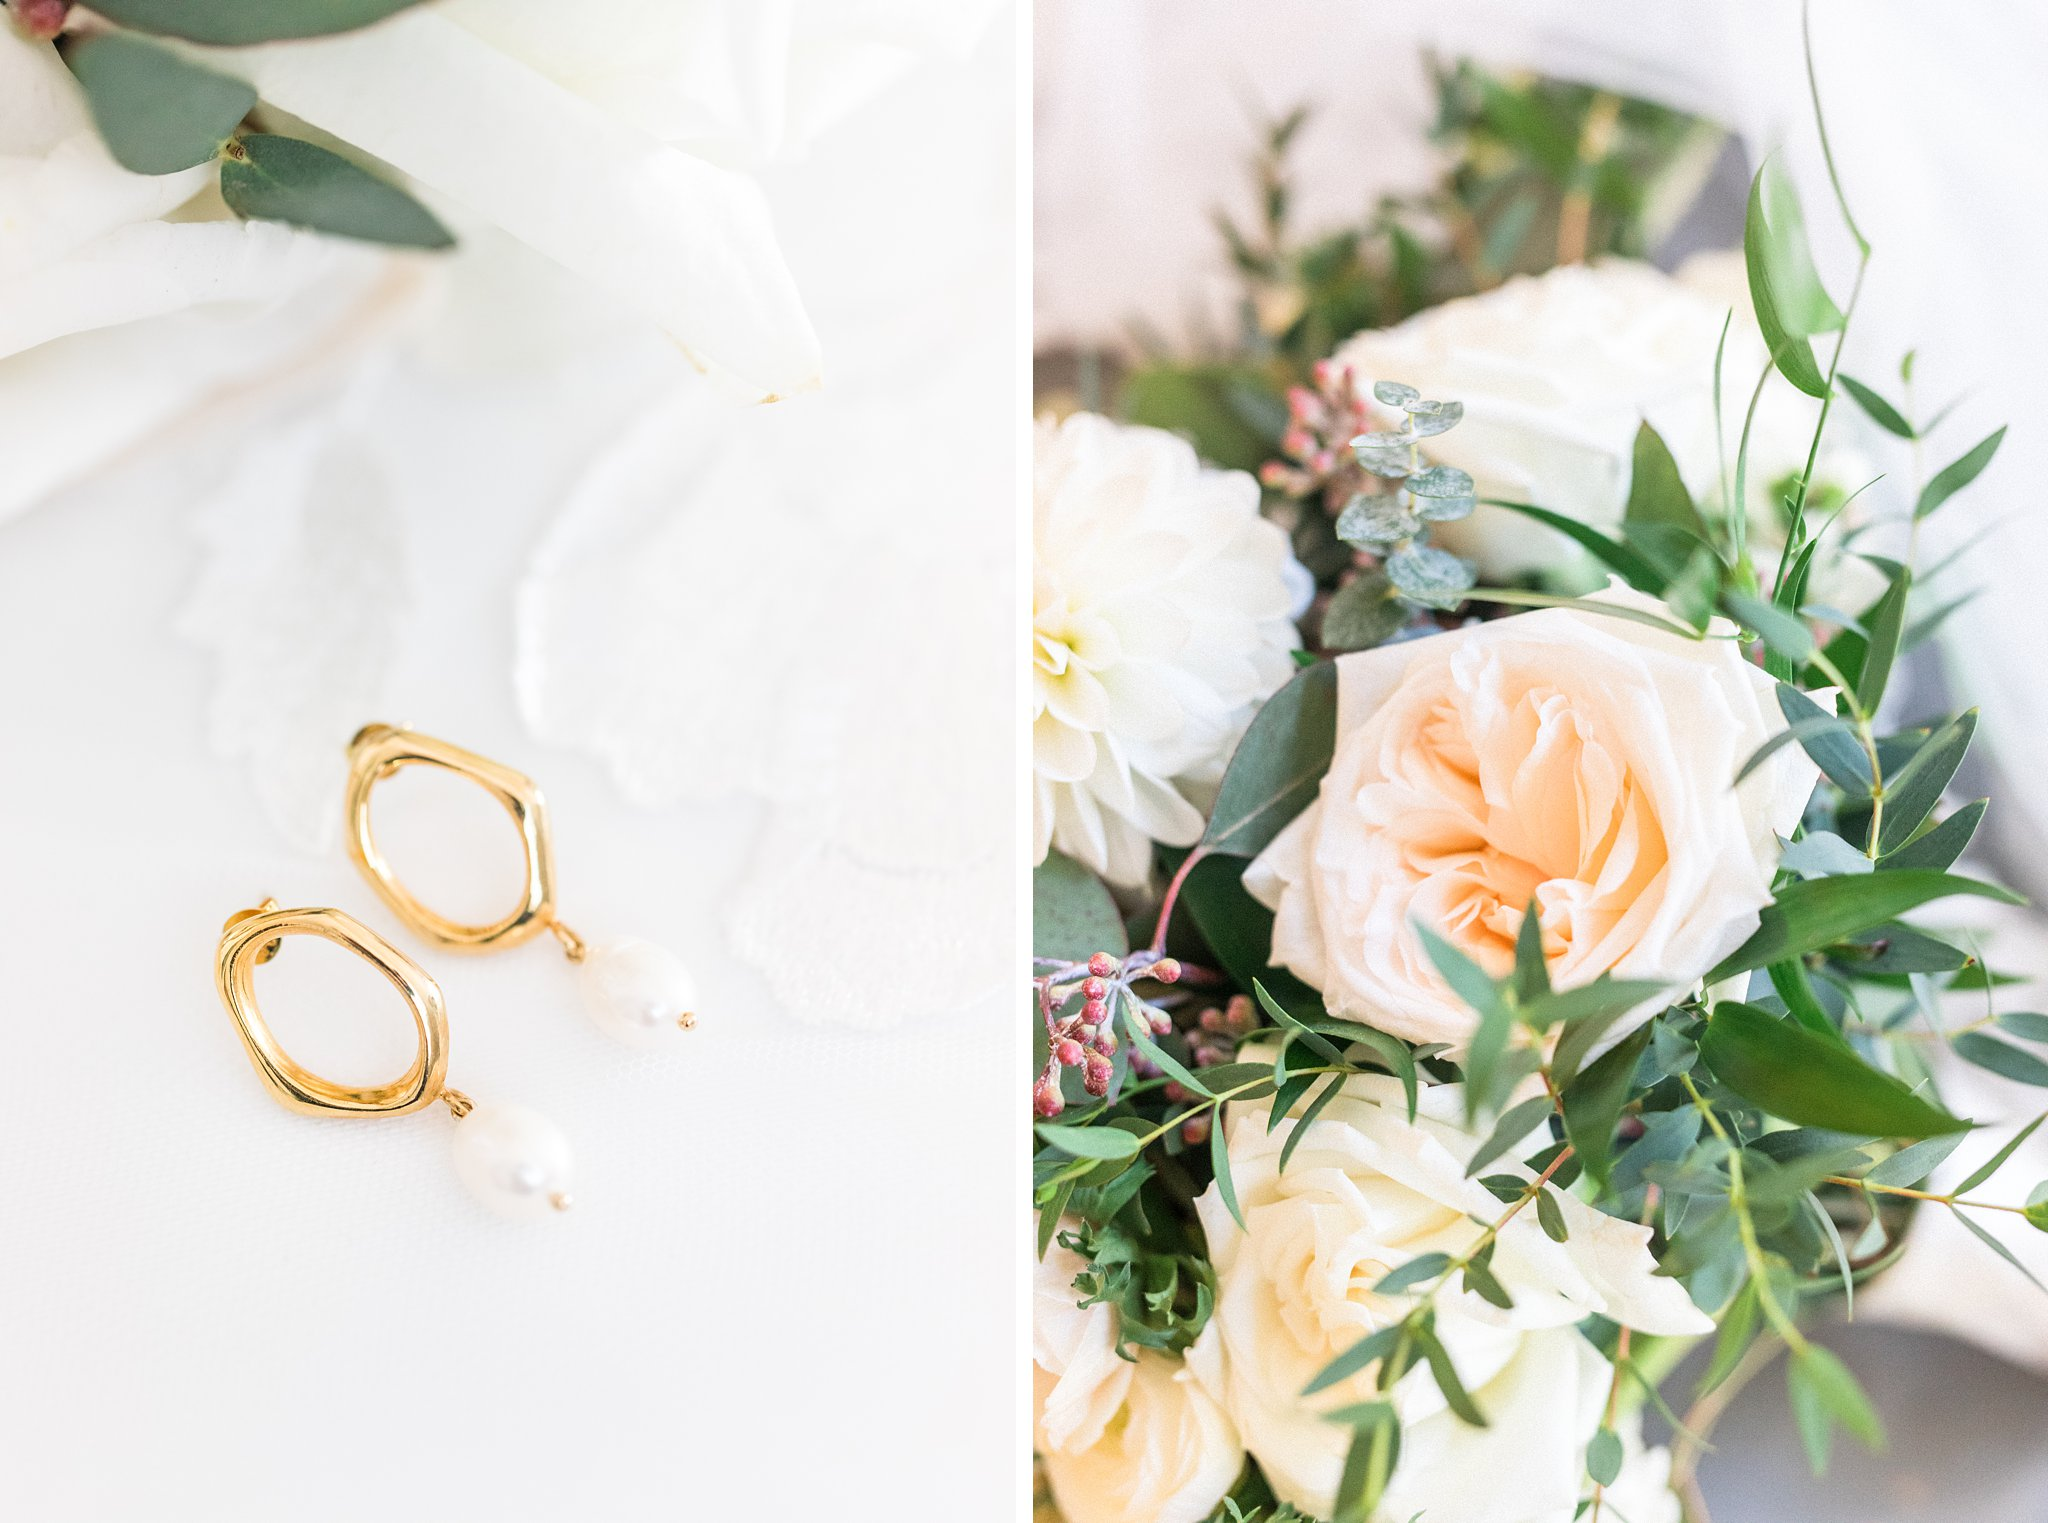 Gold earrings with pearl, Opinicon Wedding Photos by Amy Pinder Photography